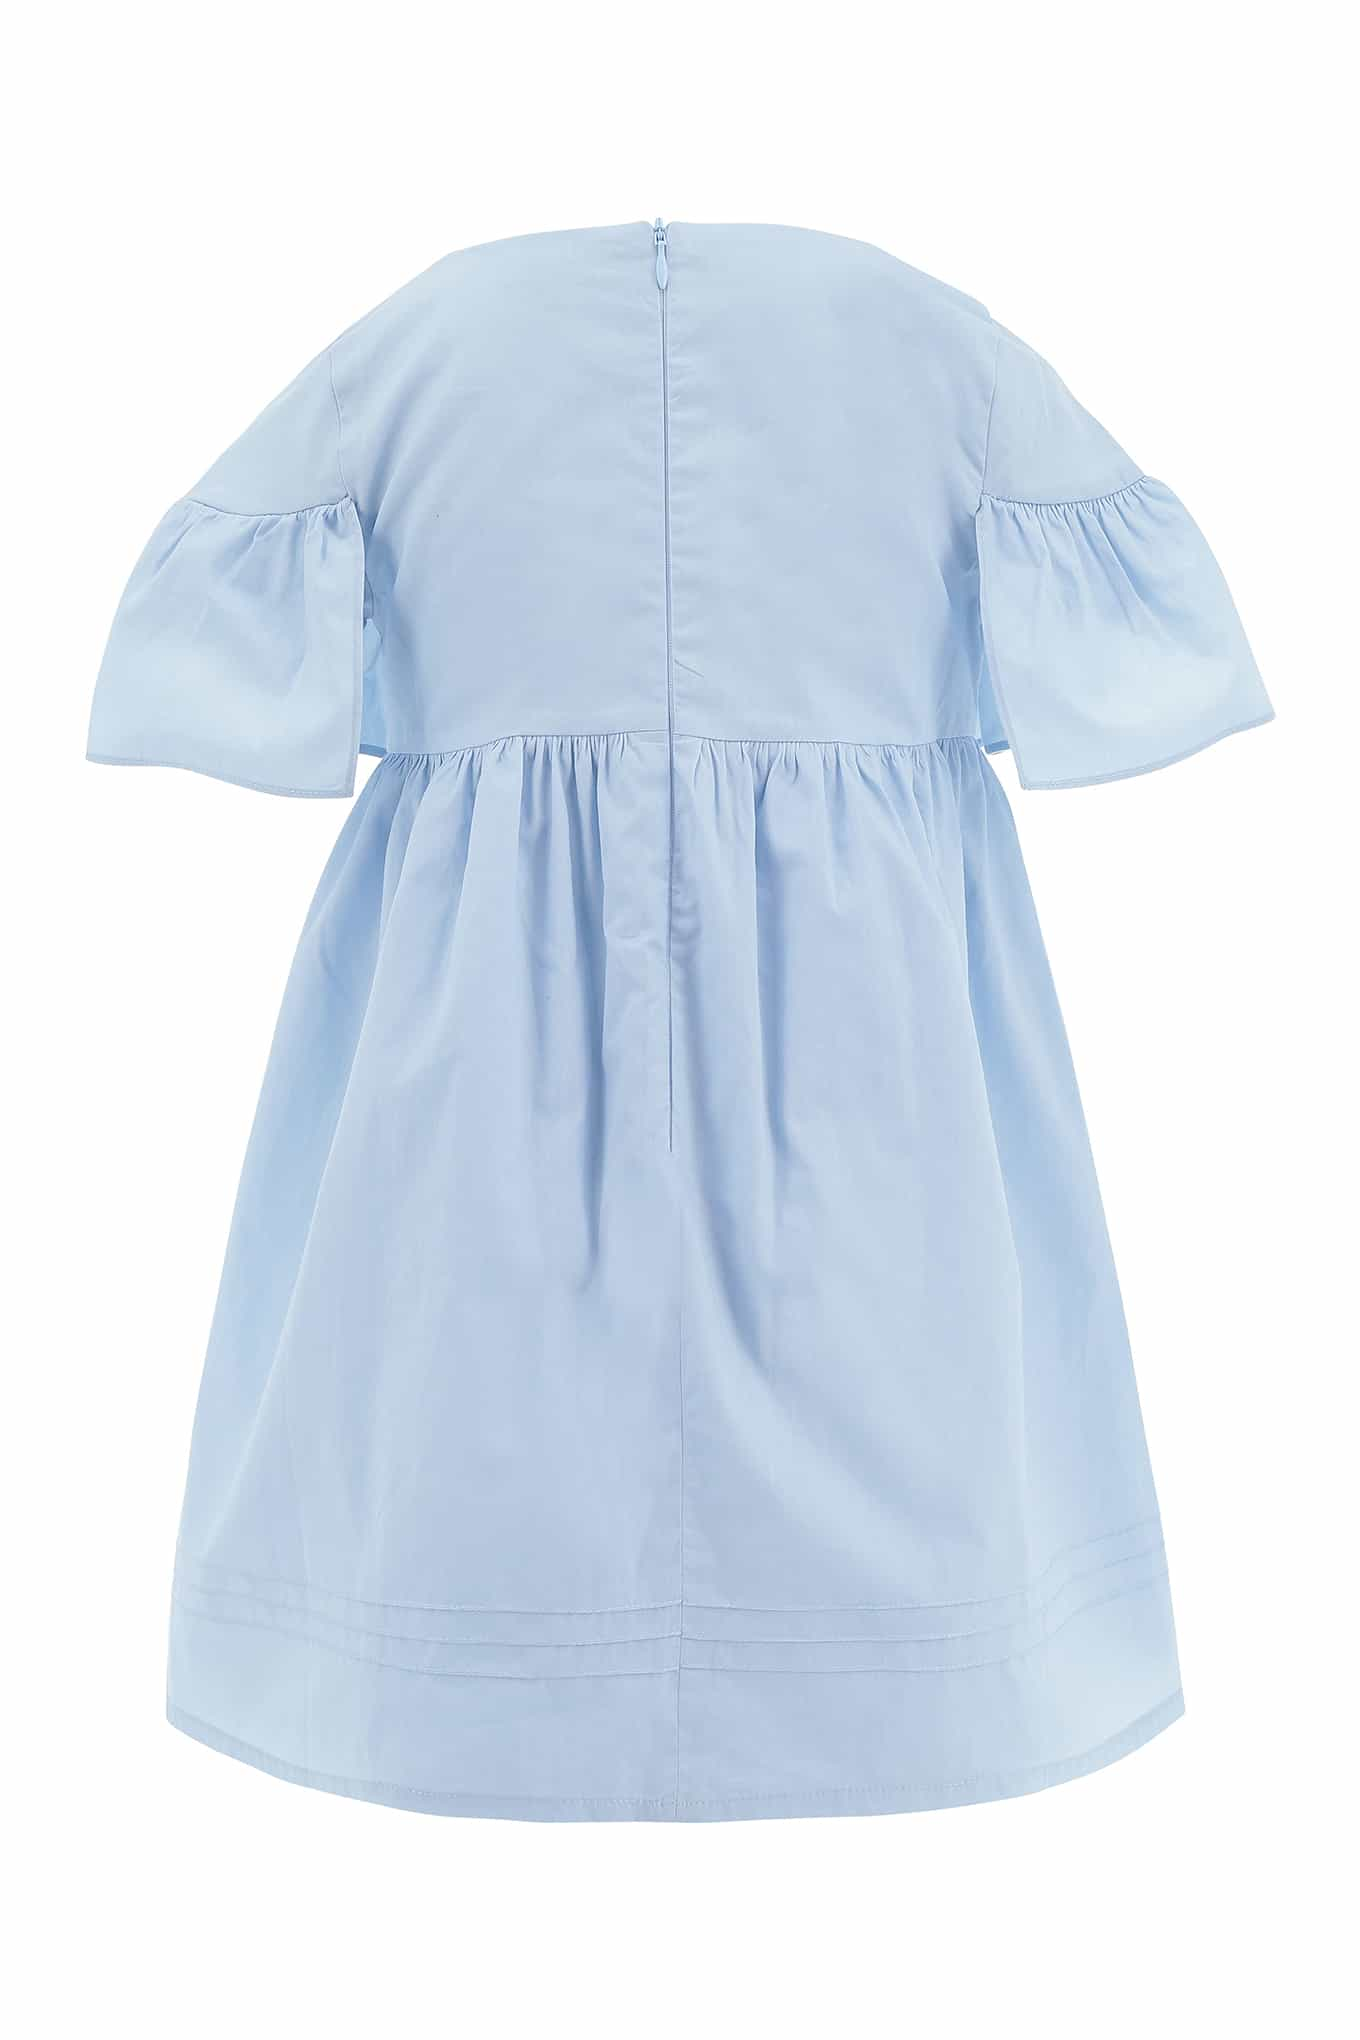 Dress Light Blue Casual Girl